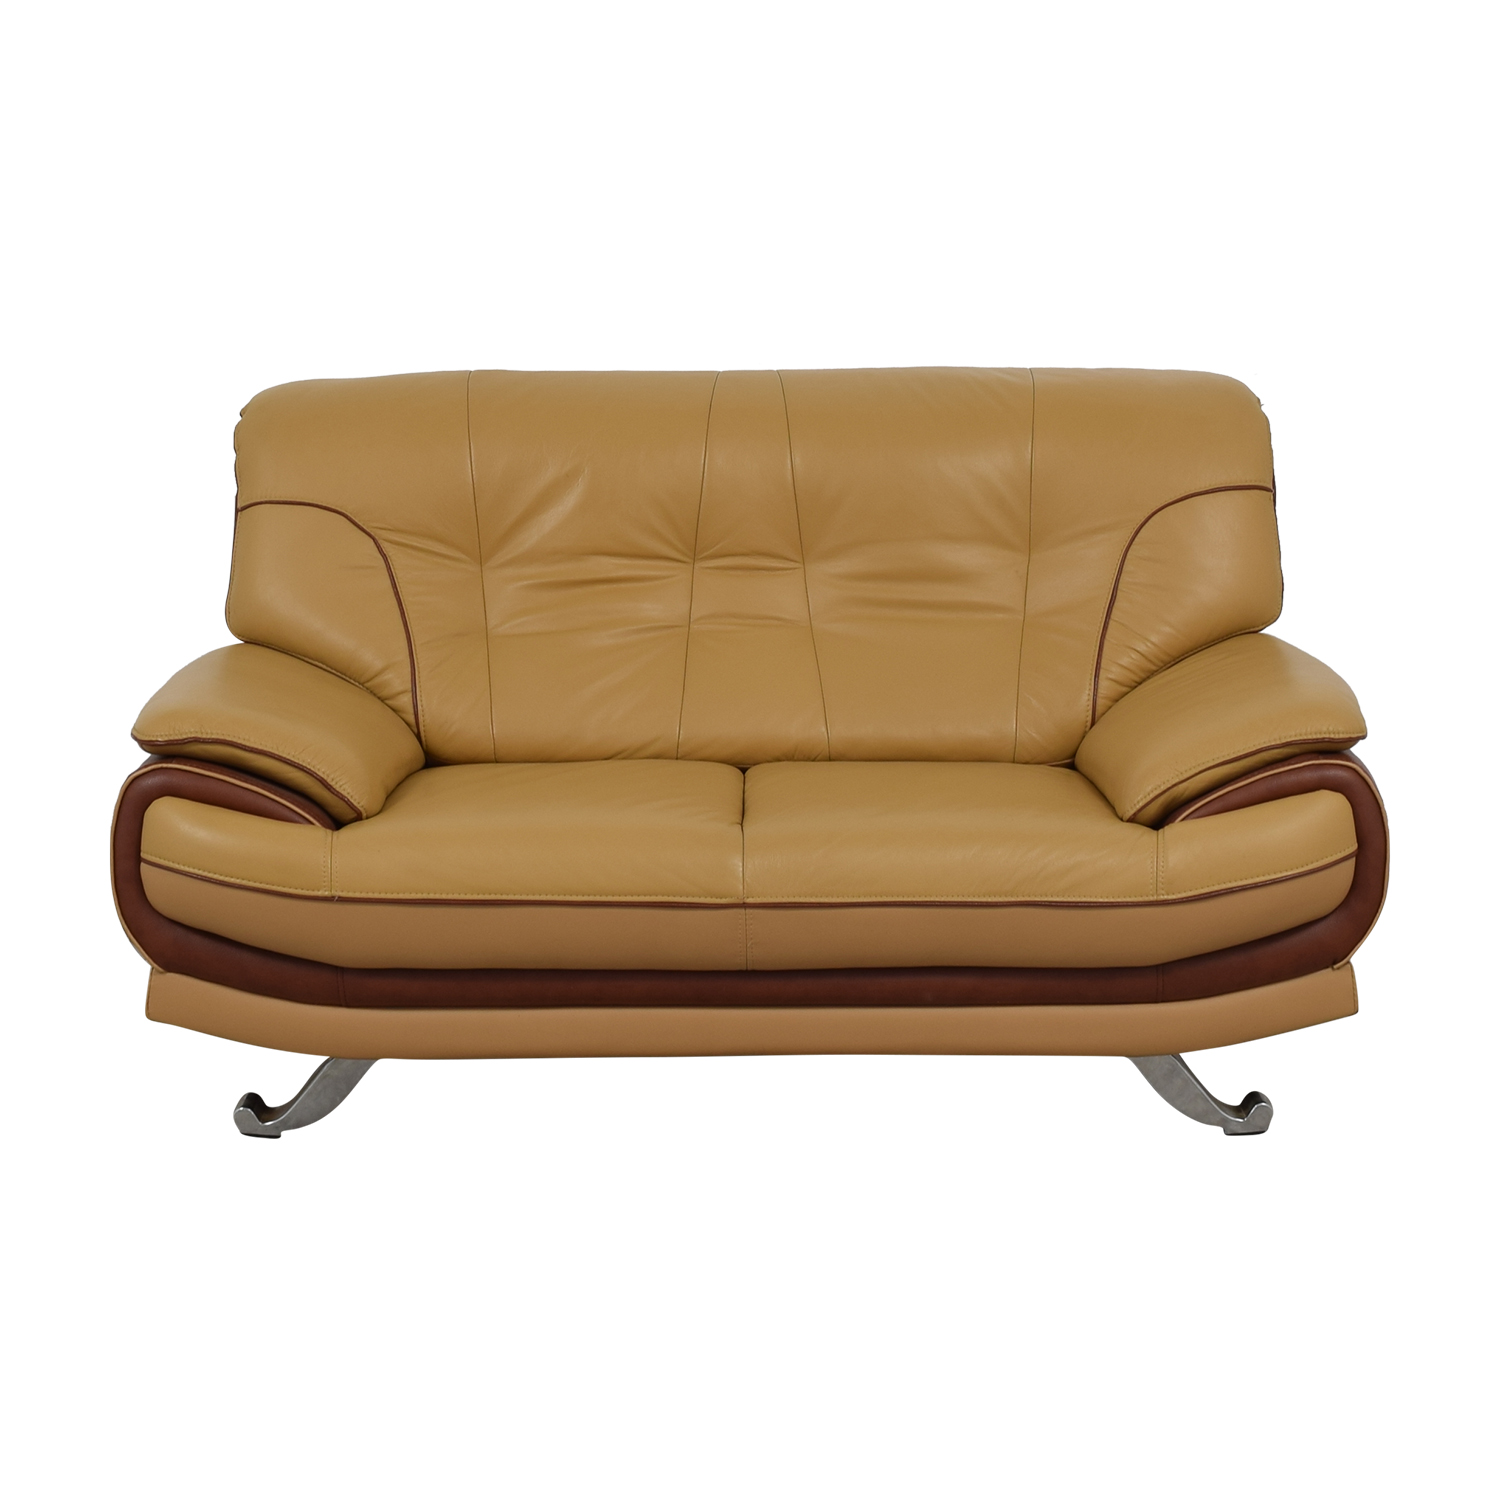 AE Furniture AE Furniture Brown and Beige Loveseat nj